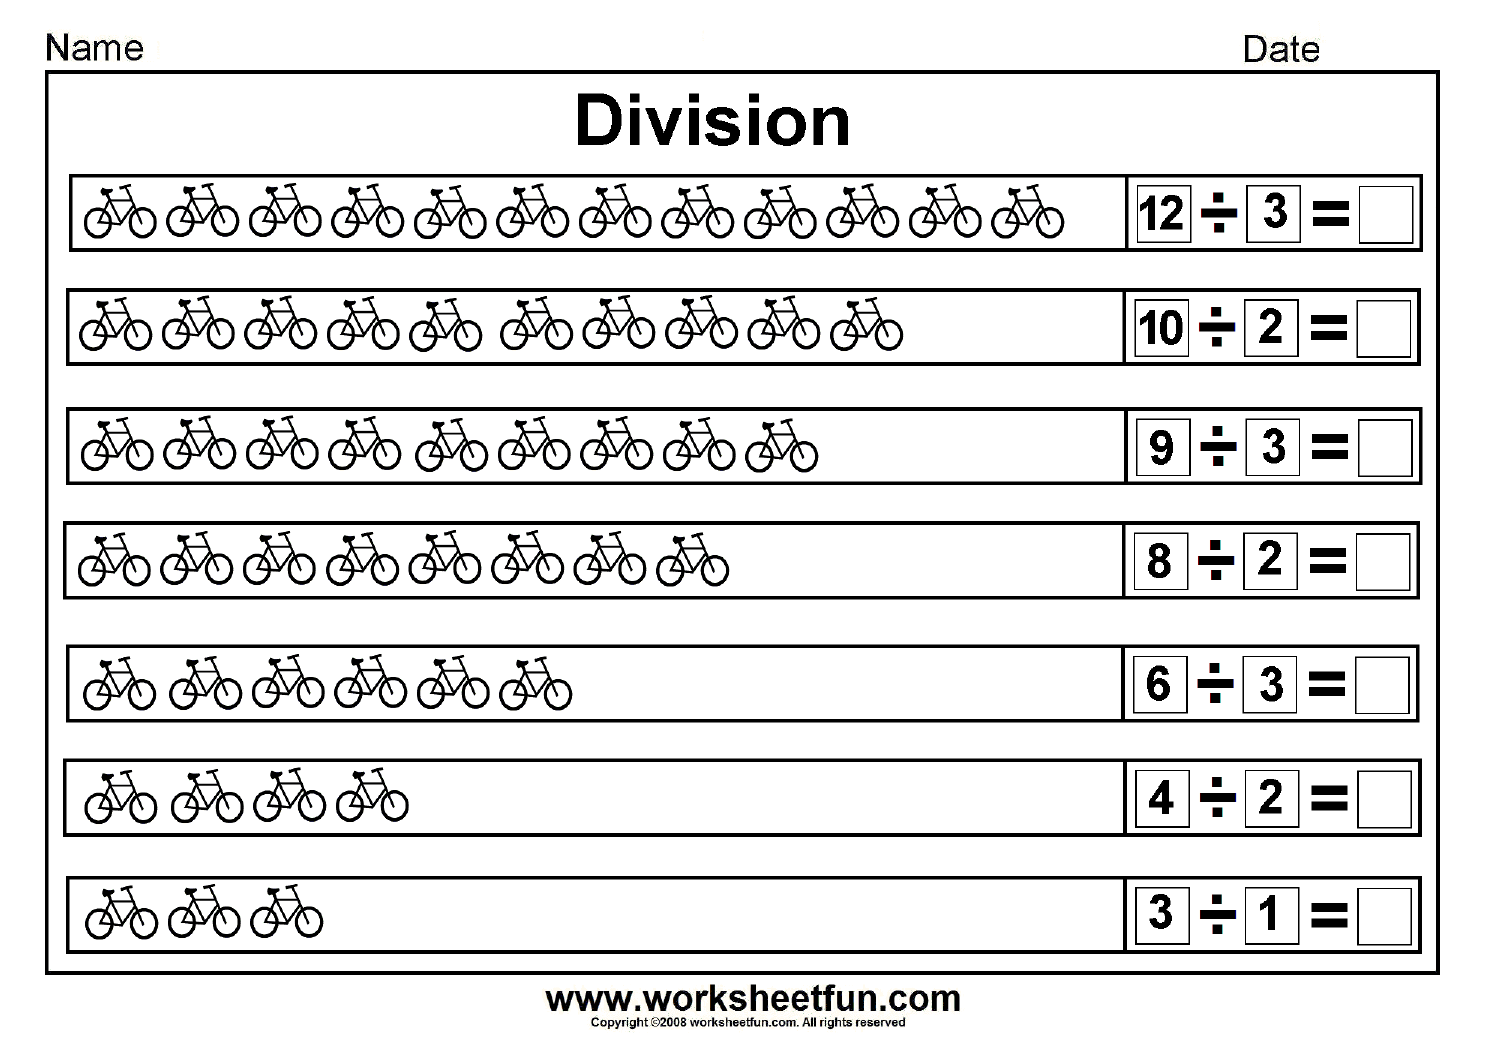 small resolution of Division worksheets on worksheetfun.com   Division worksheets